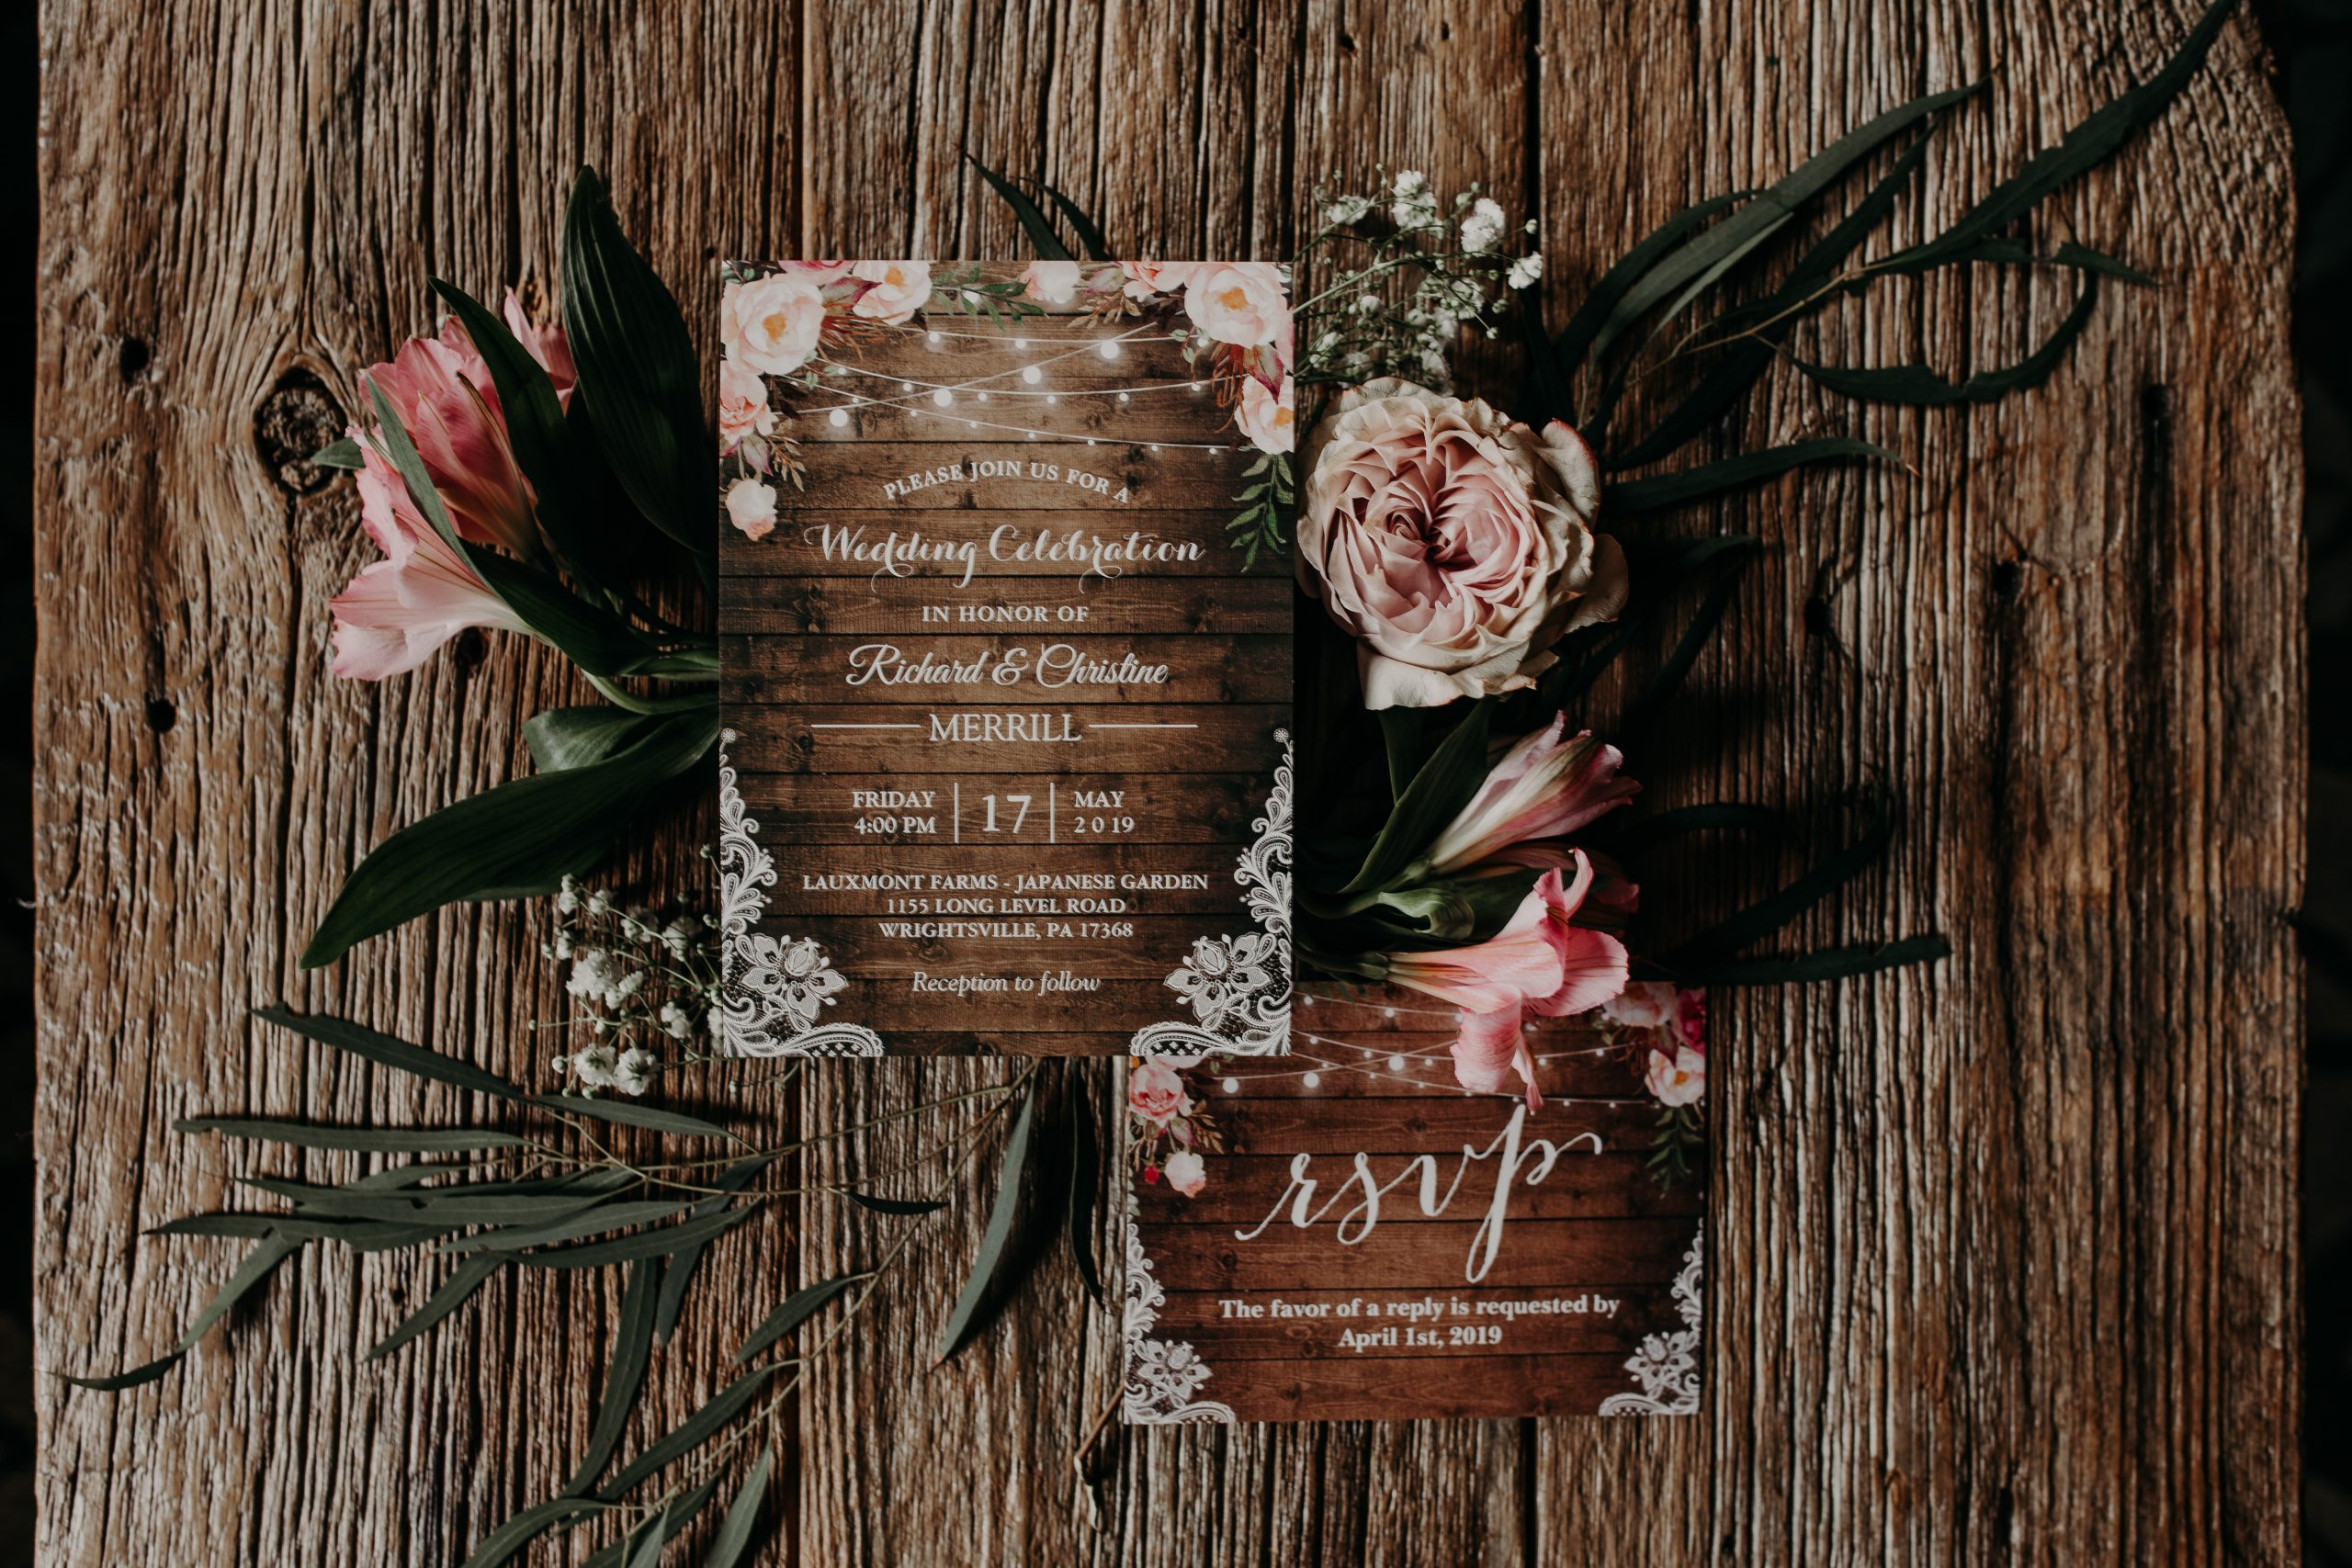 The invitations to the wedding of the year for friends and family of Richard and Christine. Blush pink and rustic wood are a reoccurring theme in the soon to be wedding ceremony. Christine and Richard wed on the Chestnut Hill Villa grounds on May of 2019. This organic ethereal styled wedding was captured by Garnet Dahlia Photography and featured on Dream Weddings.